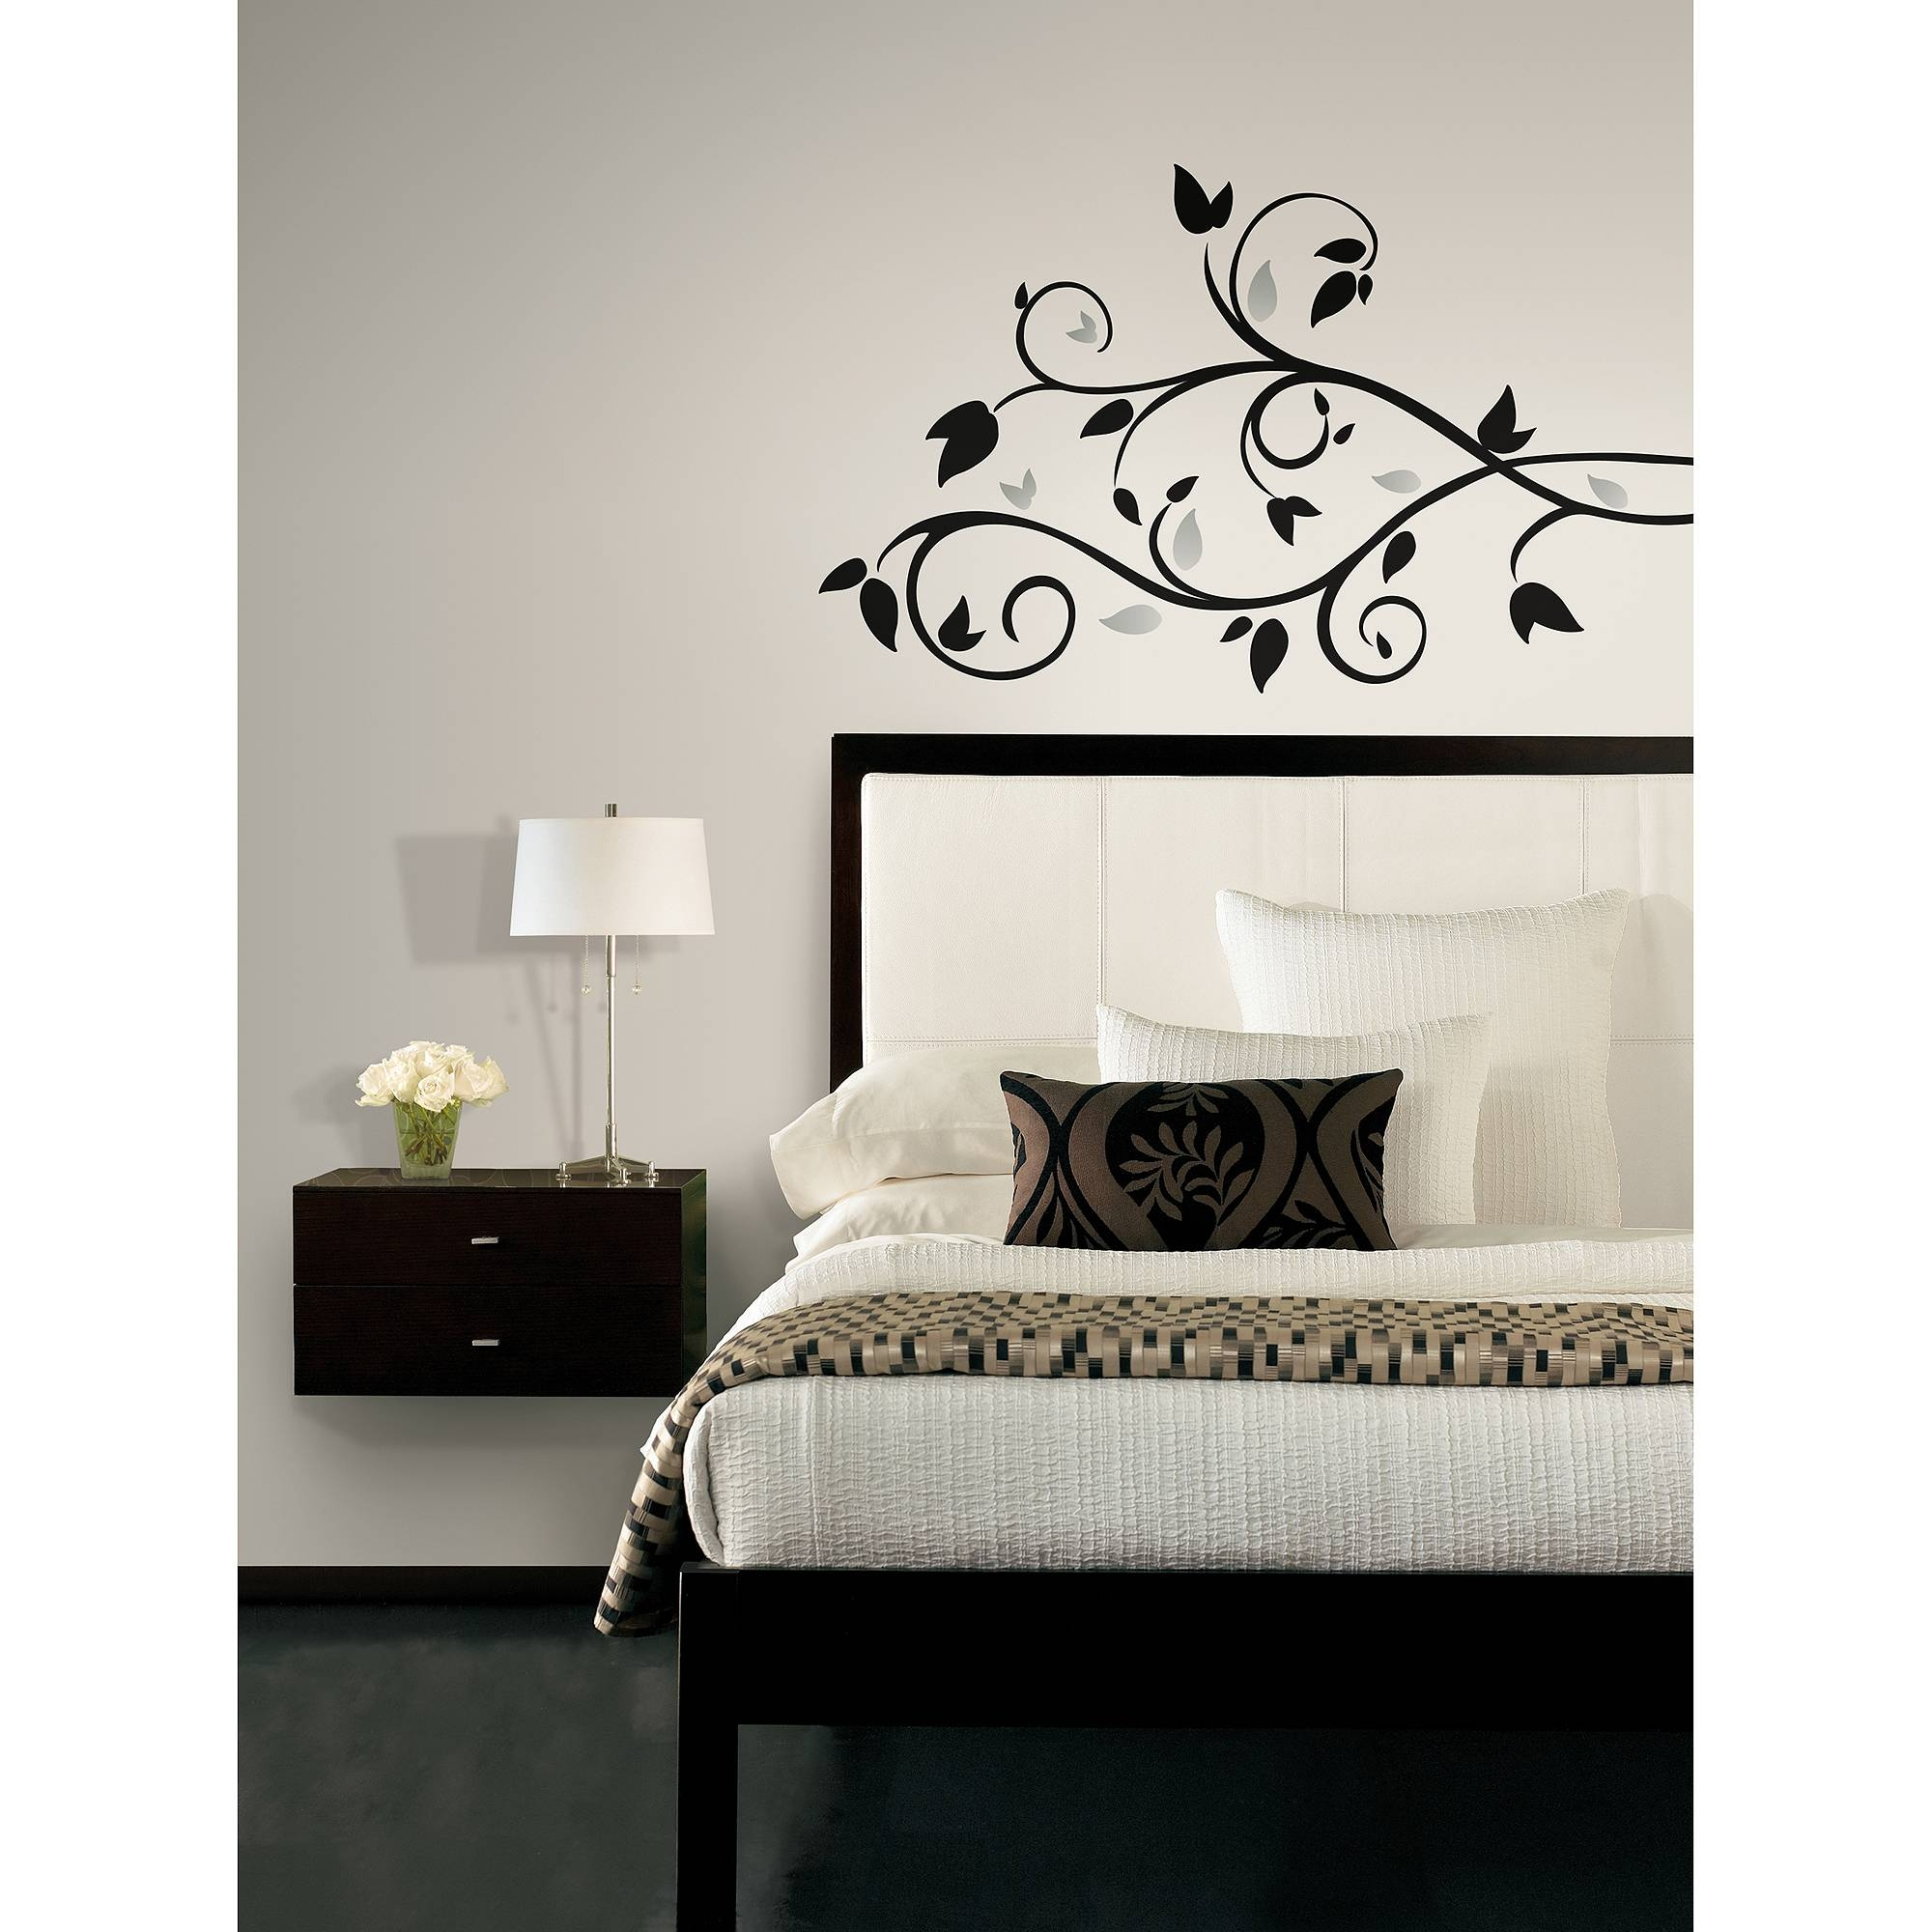 Roommates Foil Tree Branch Peel And Stick Wall Decal – Walmart Throughout Latest Walmart Wall Stickers (View 11 of 25)